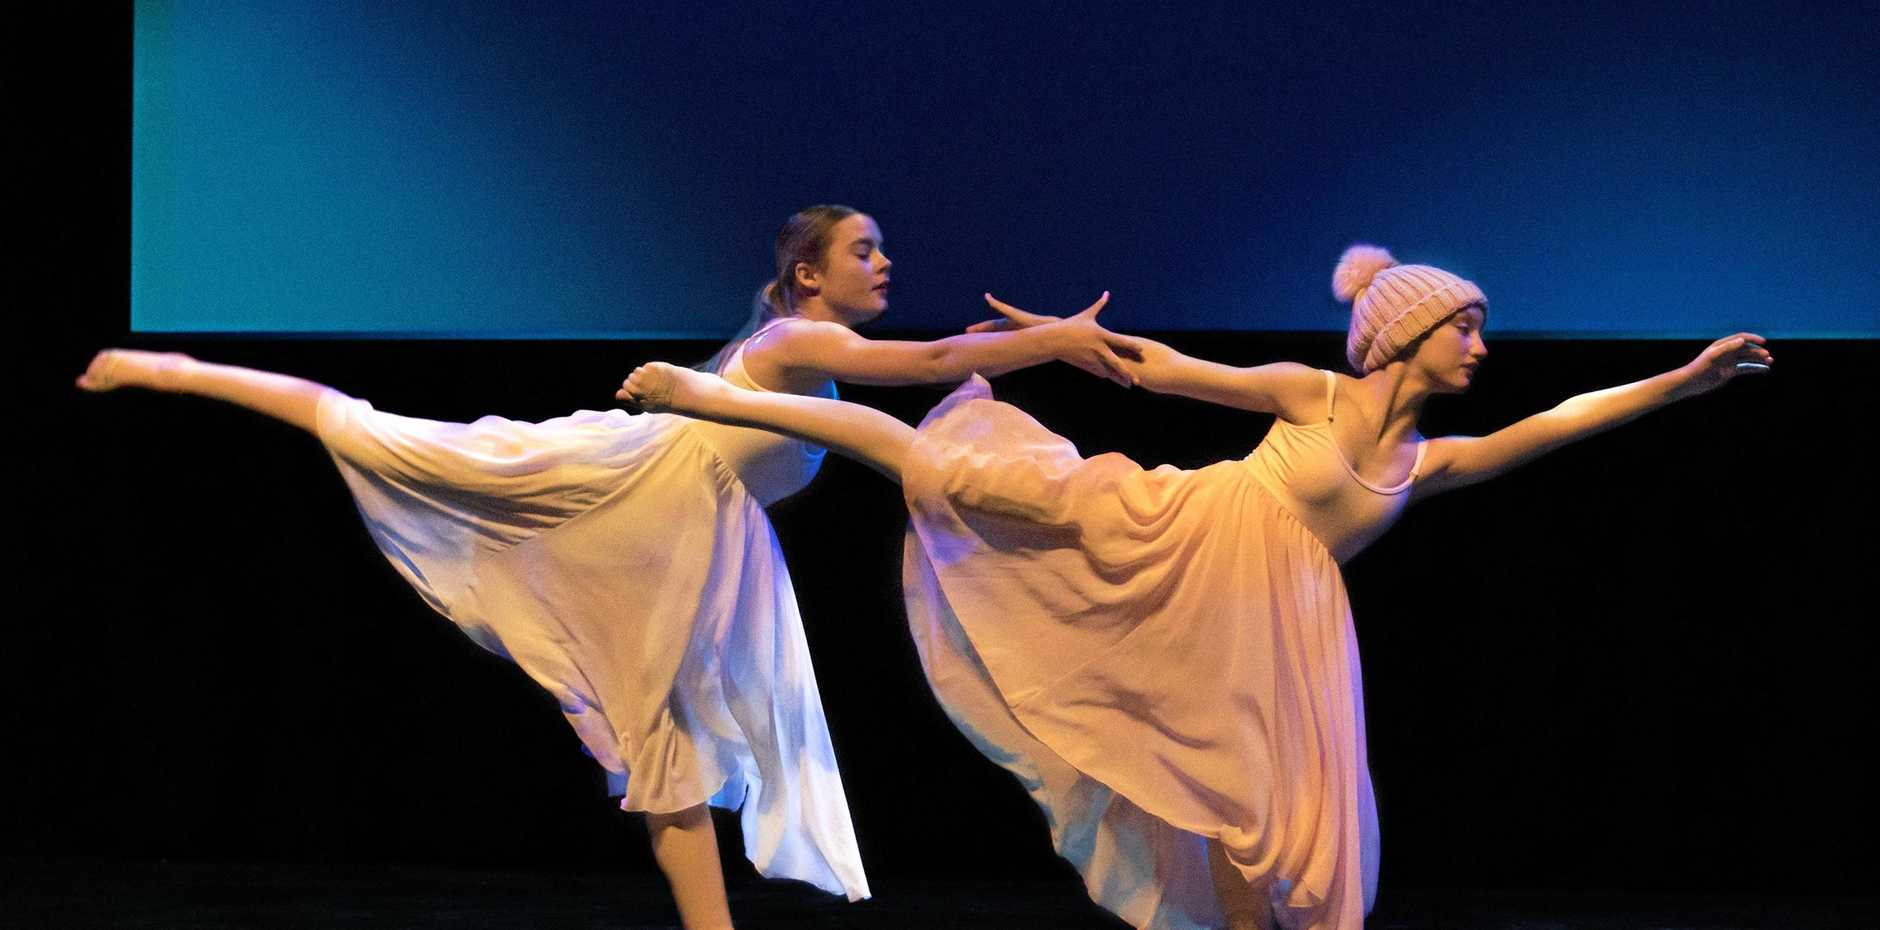 DANCING BACK IN: Year 9 dance duo Alicia Pegg (left) and Briana Sutton will be making a return this year.